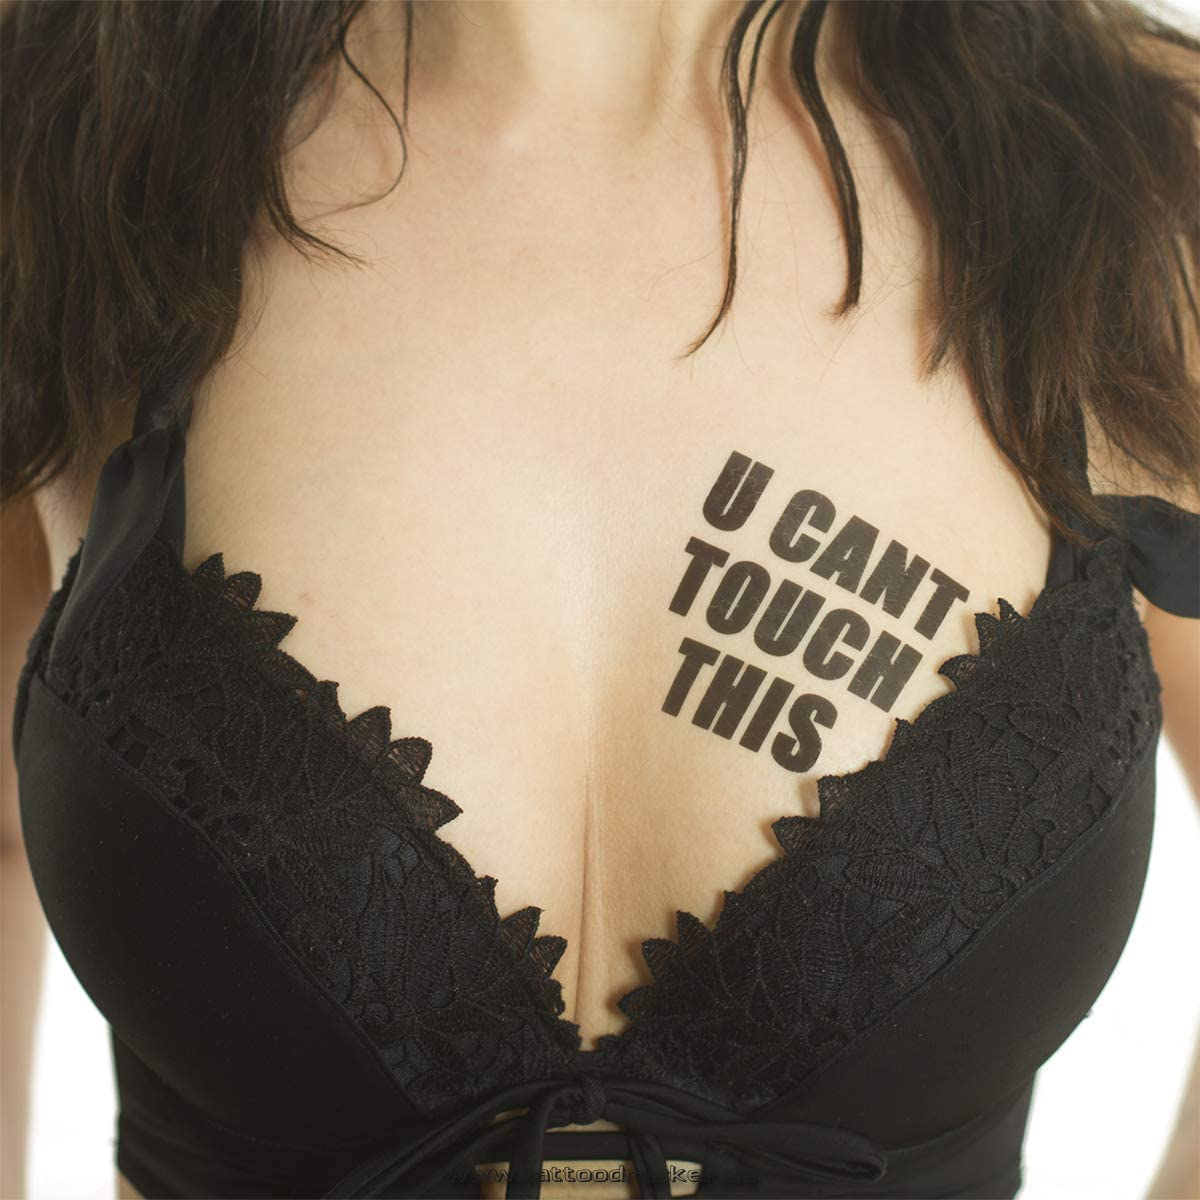 2 x U Cant Touch This Tattoo - Lettering in Black - Temporary Skin Tattoo (2)